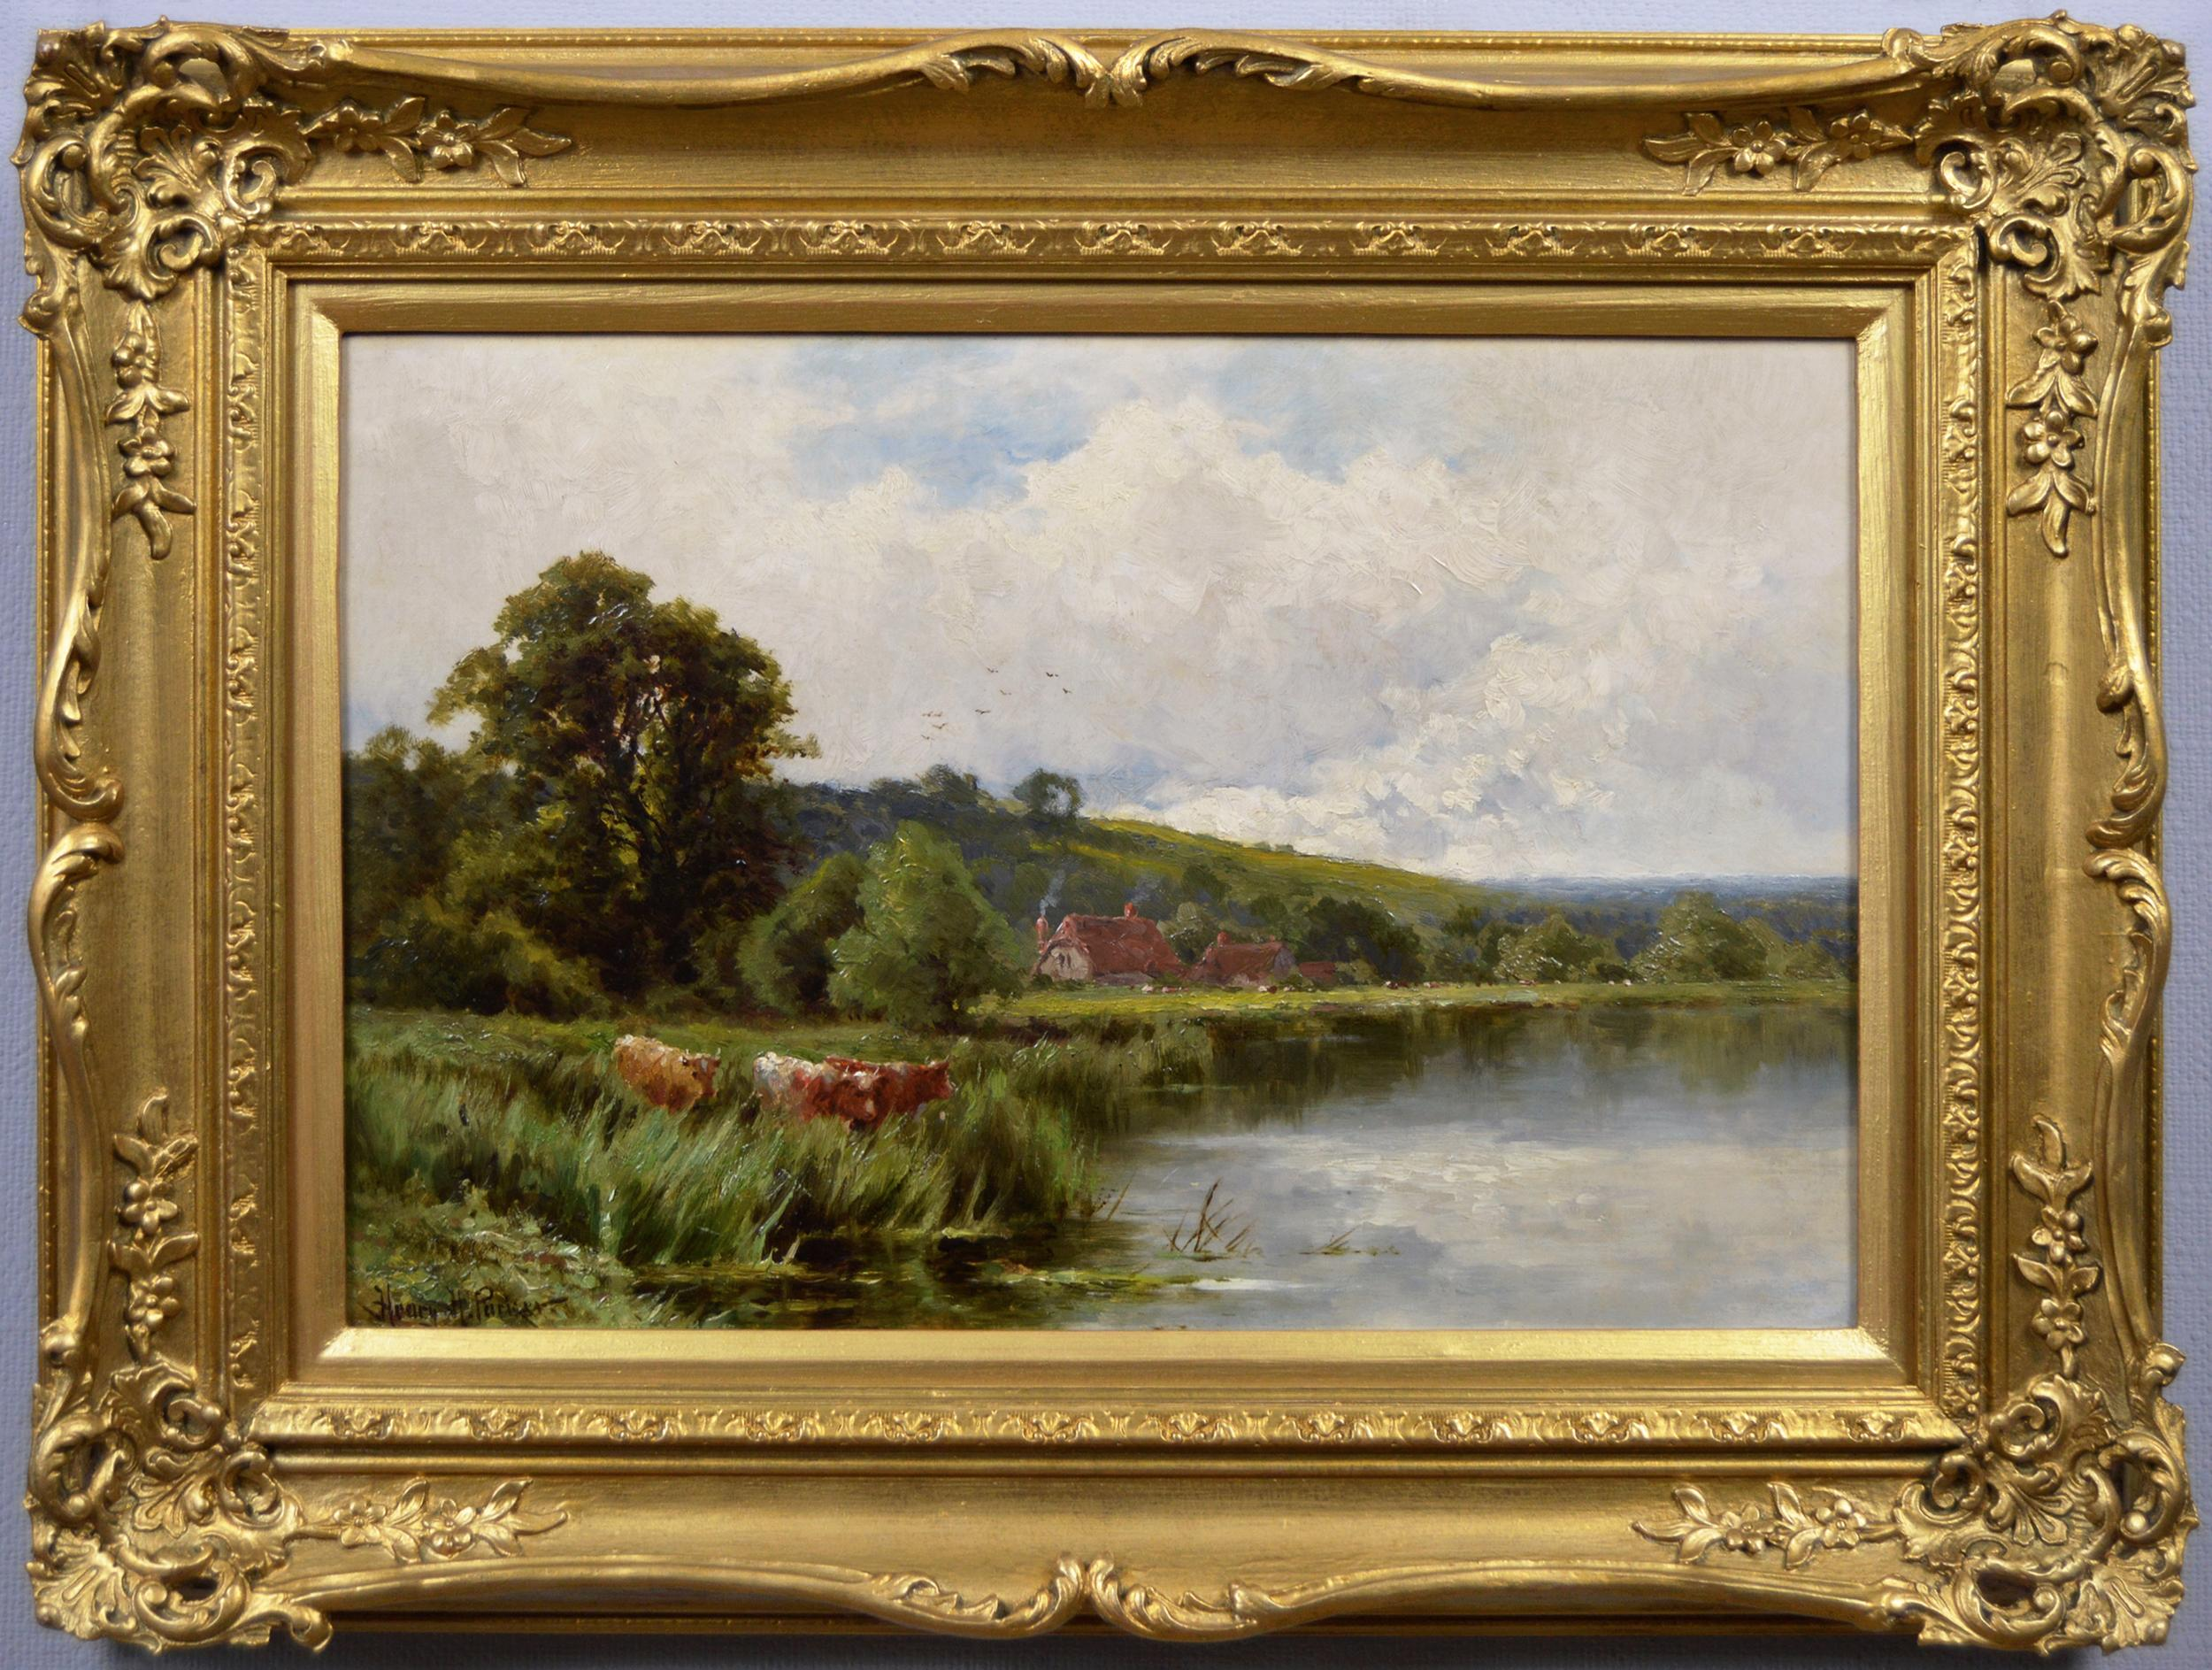 19th Century landscape oil painting of the River Thames at Streatley